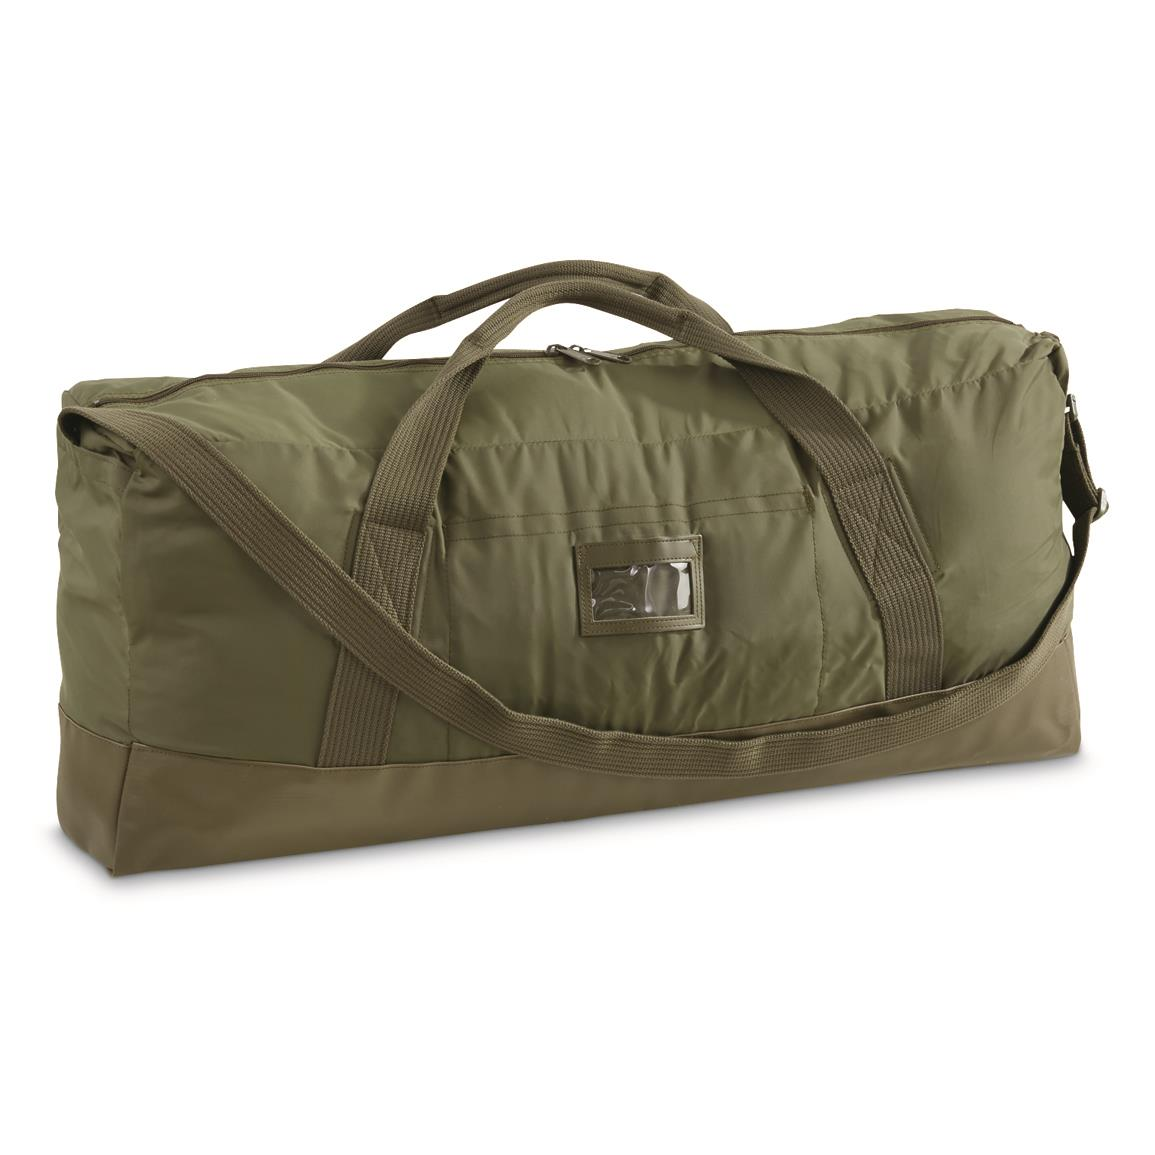 French Military Surplus F2 Duffel Bag, New